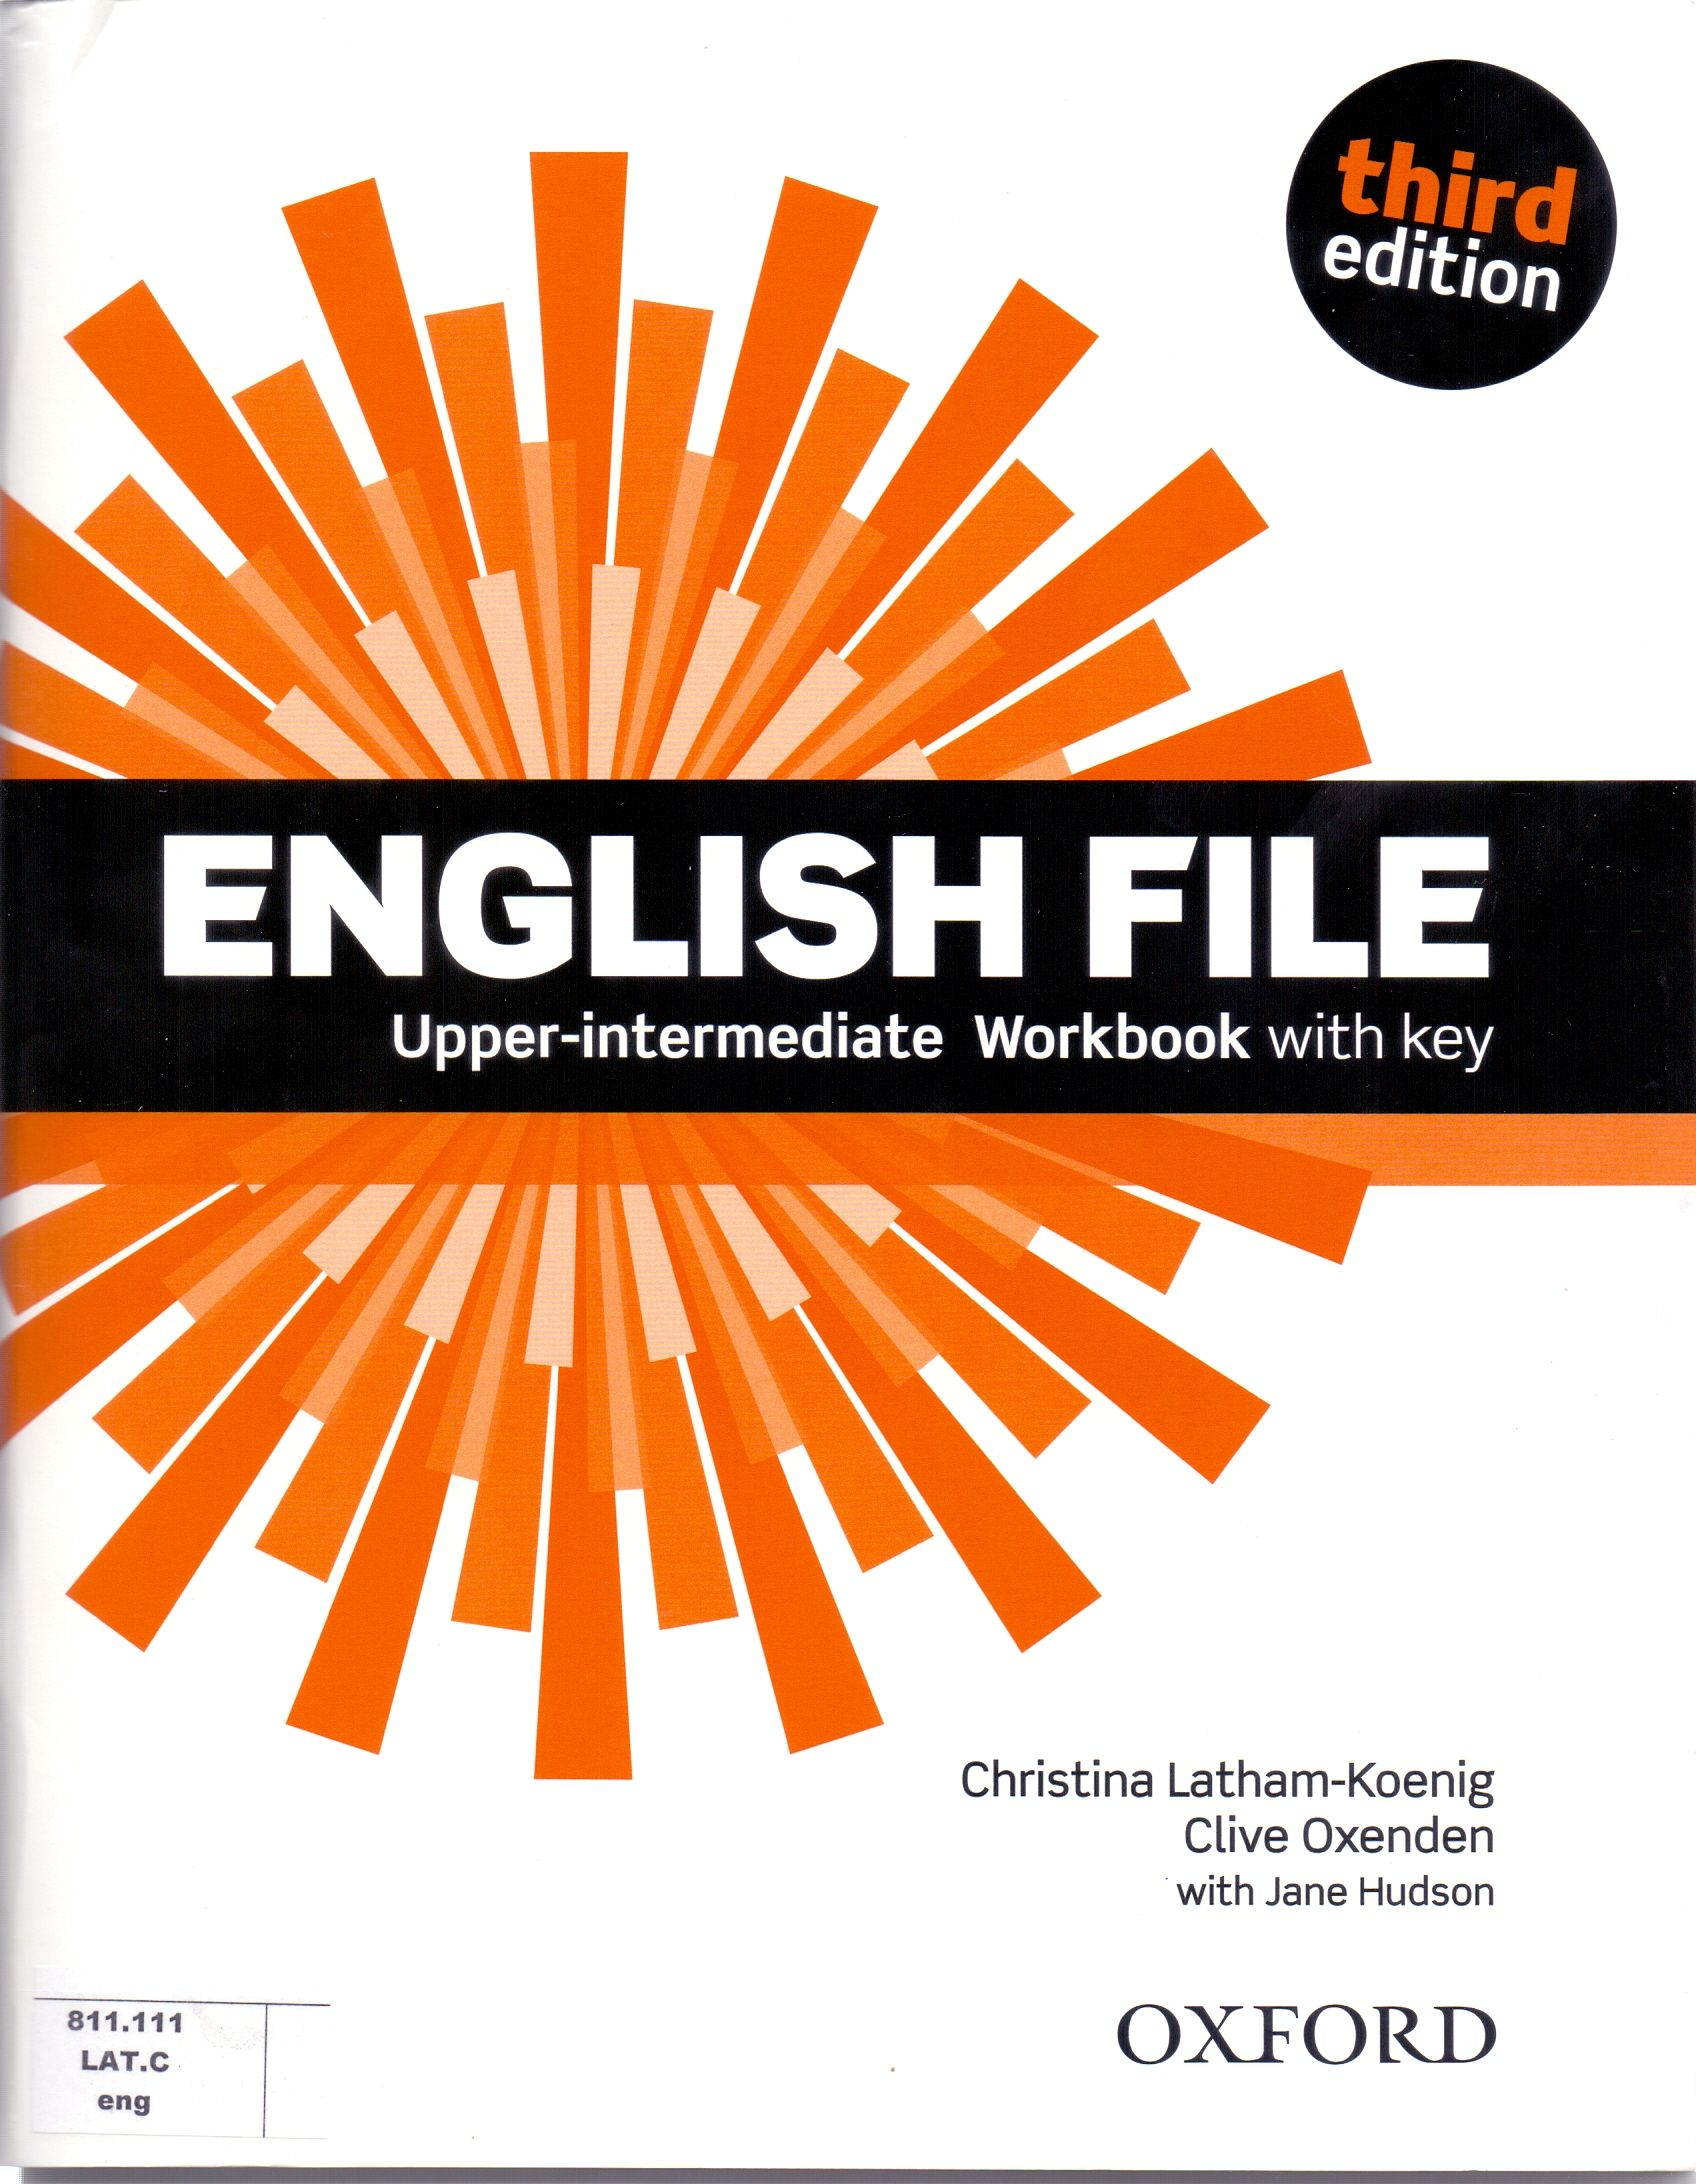 Libros Oxford Ingles English File Upper Intermediate Workbook With Key